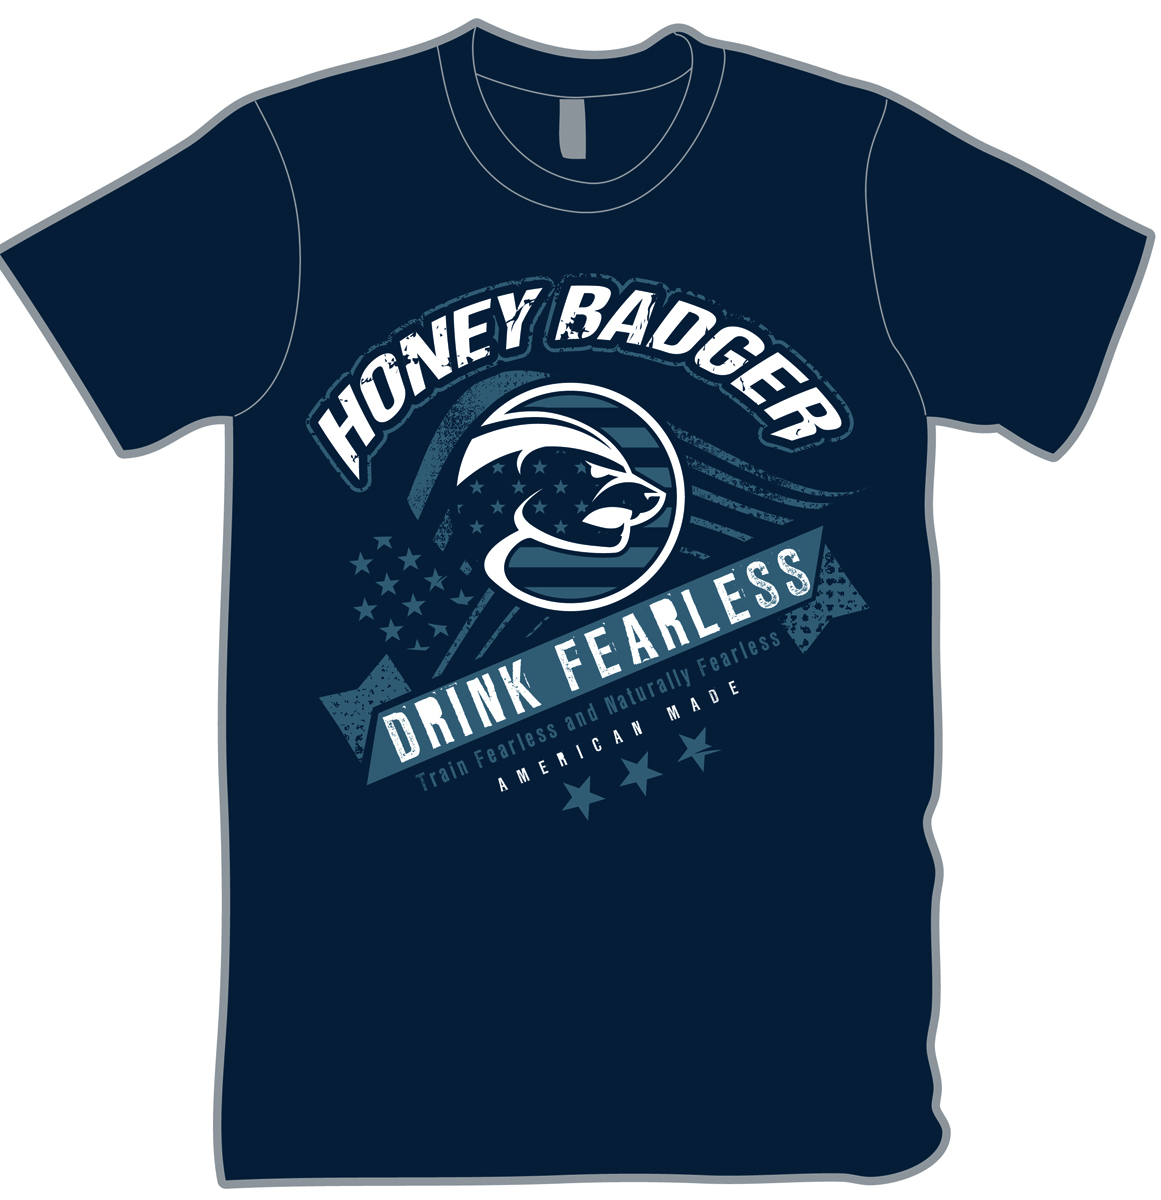 Modern professional t shirt design for honey badger llc for Modern t shirt designs